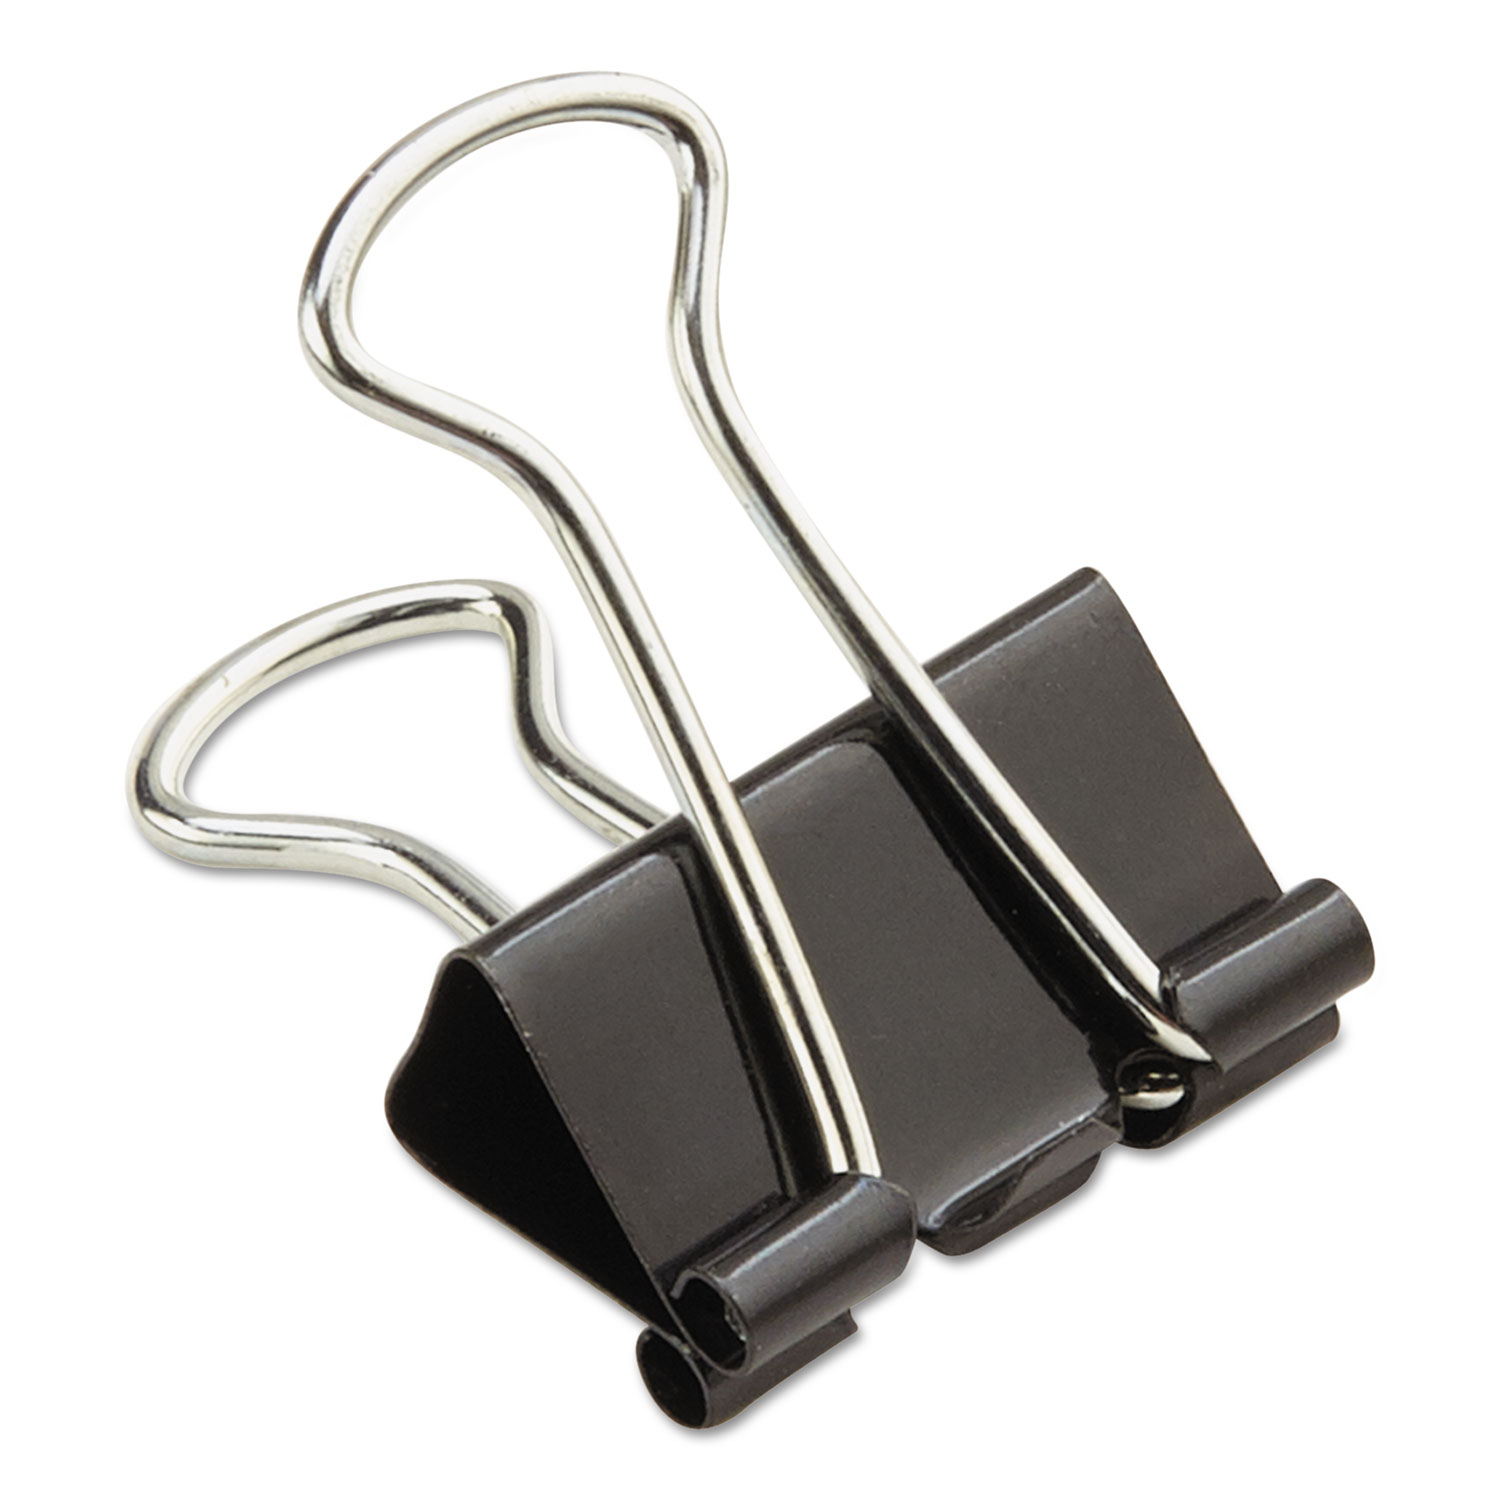 Binder Clips, Small, Black/Silver, 36/Pack